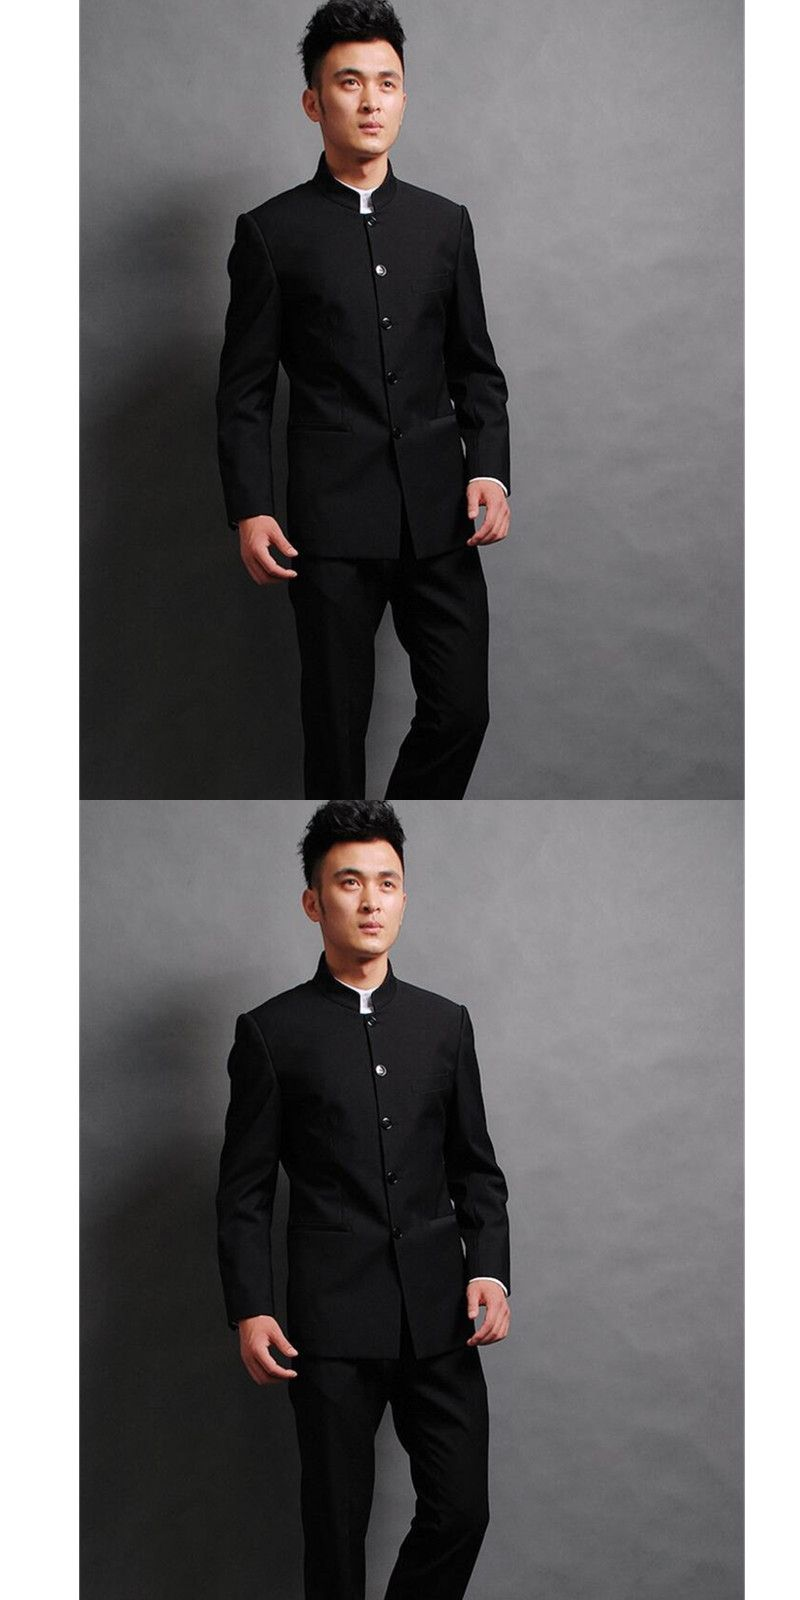 29d7a59881d Chinese wind stand collar groom men suit high quality wedding dress terno slim  fit black two-piece mens suits (jacket + pants)